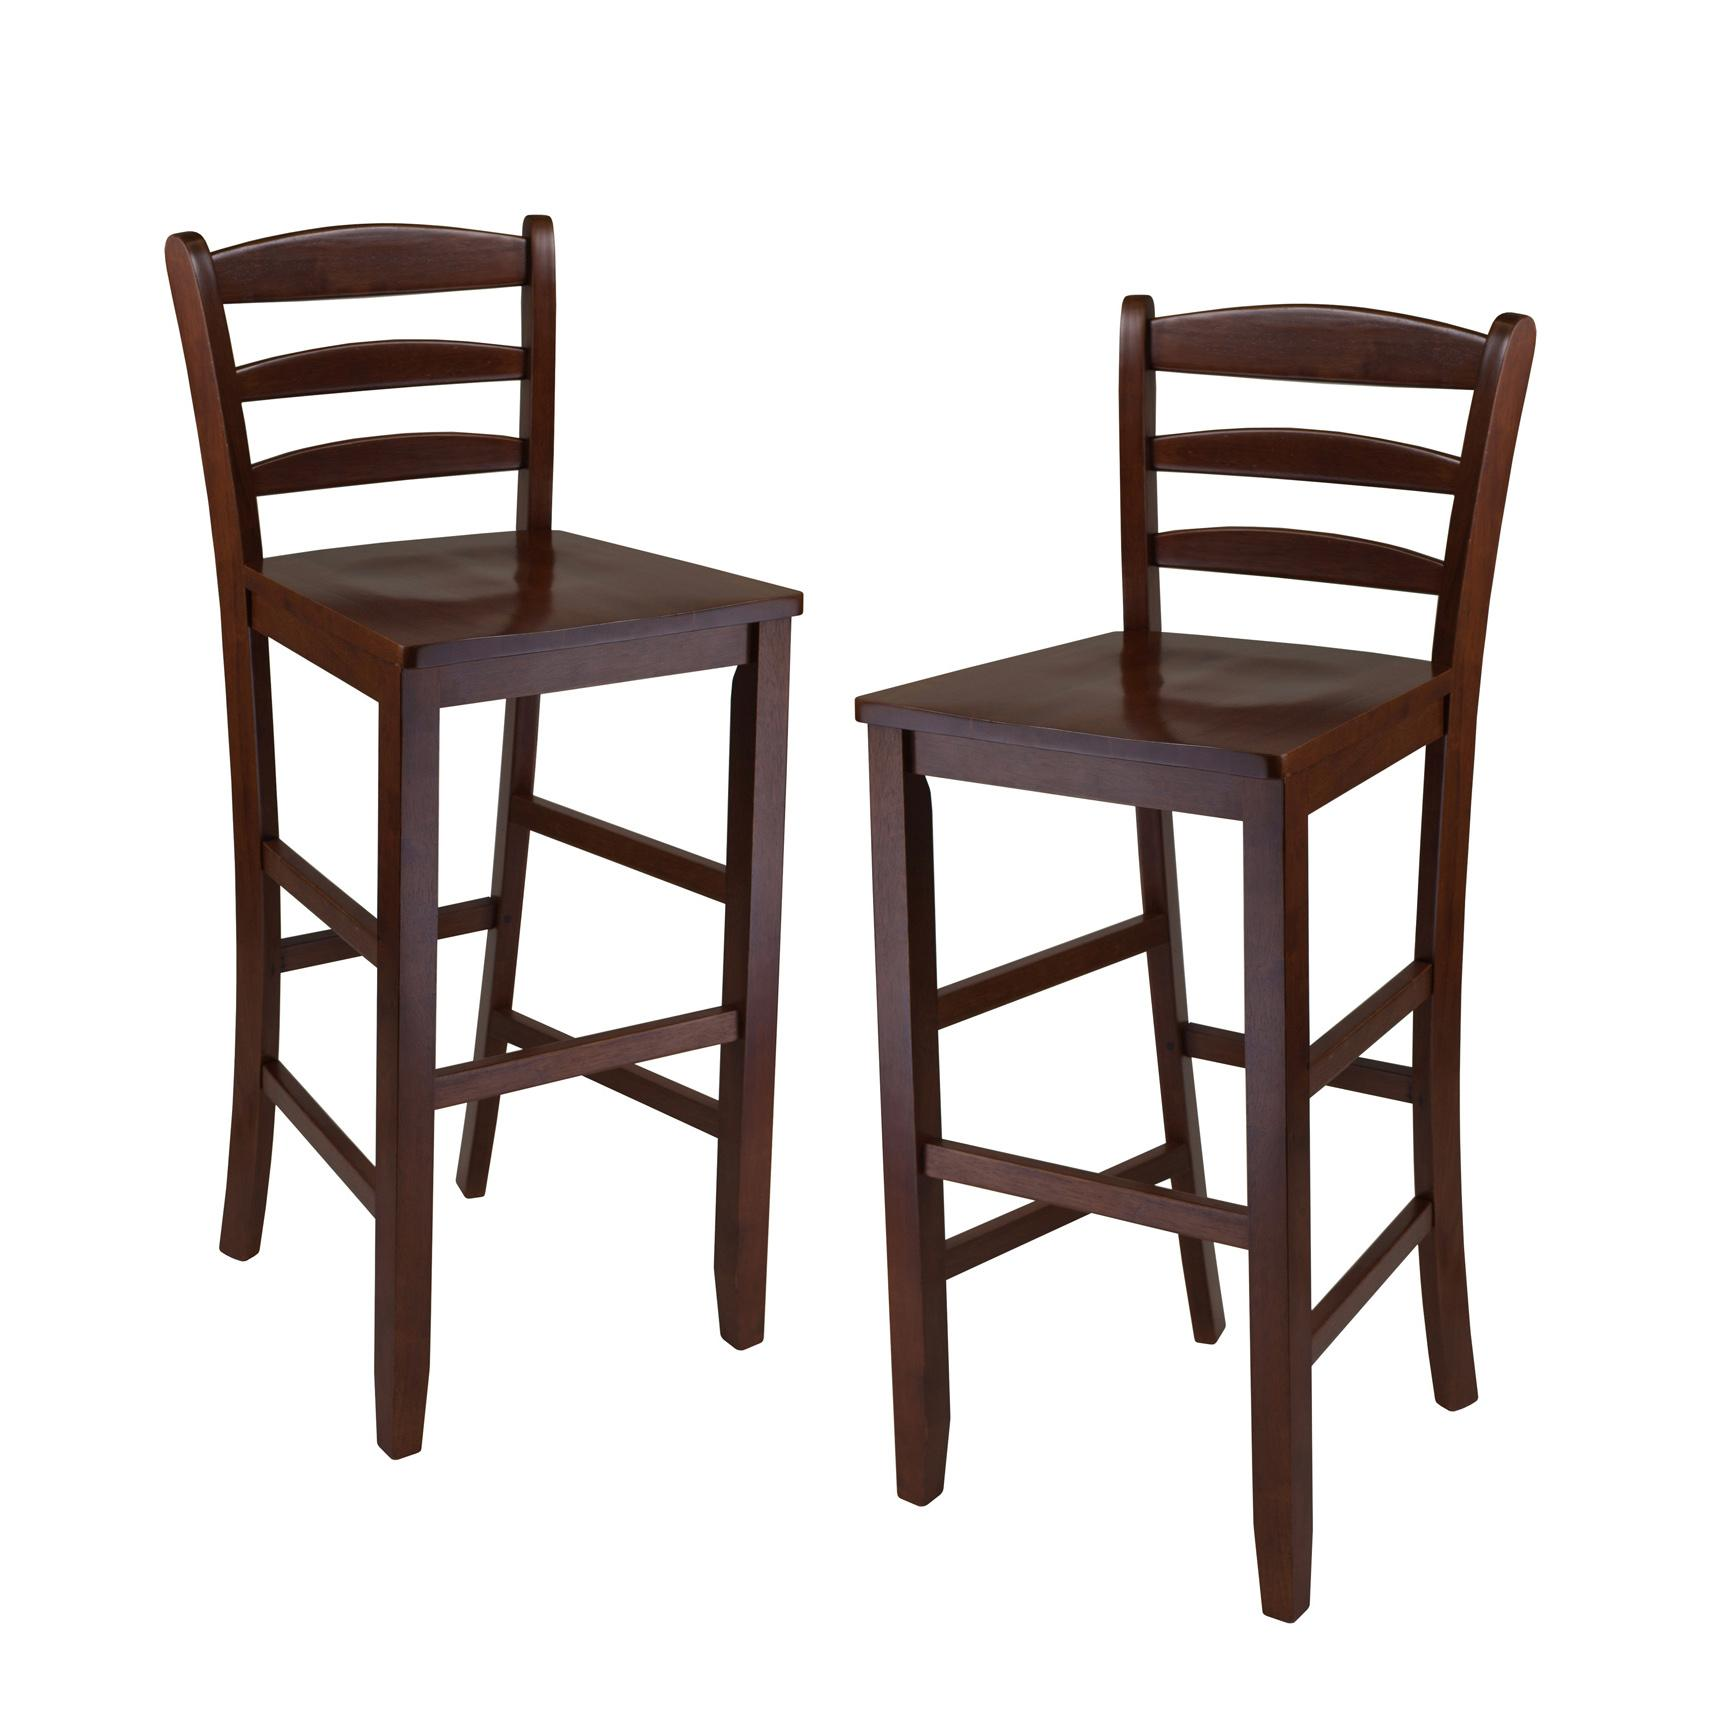 View larger  sc 1 st  Amazon.com & Amazon.com: Winsome 29-Inch Bar Ladder Back Stool Set of 2 ... islam-shia.org